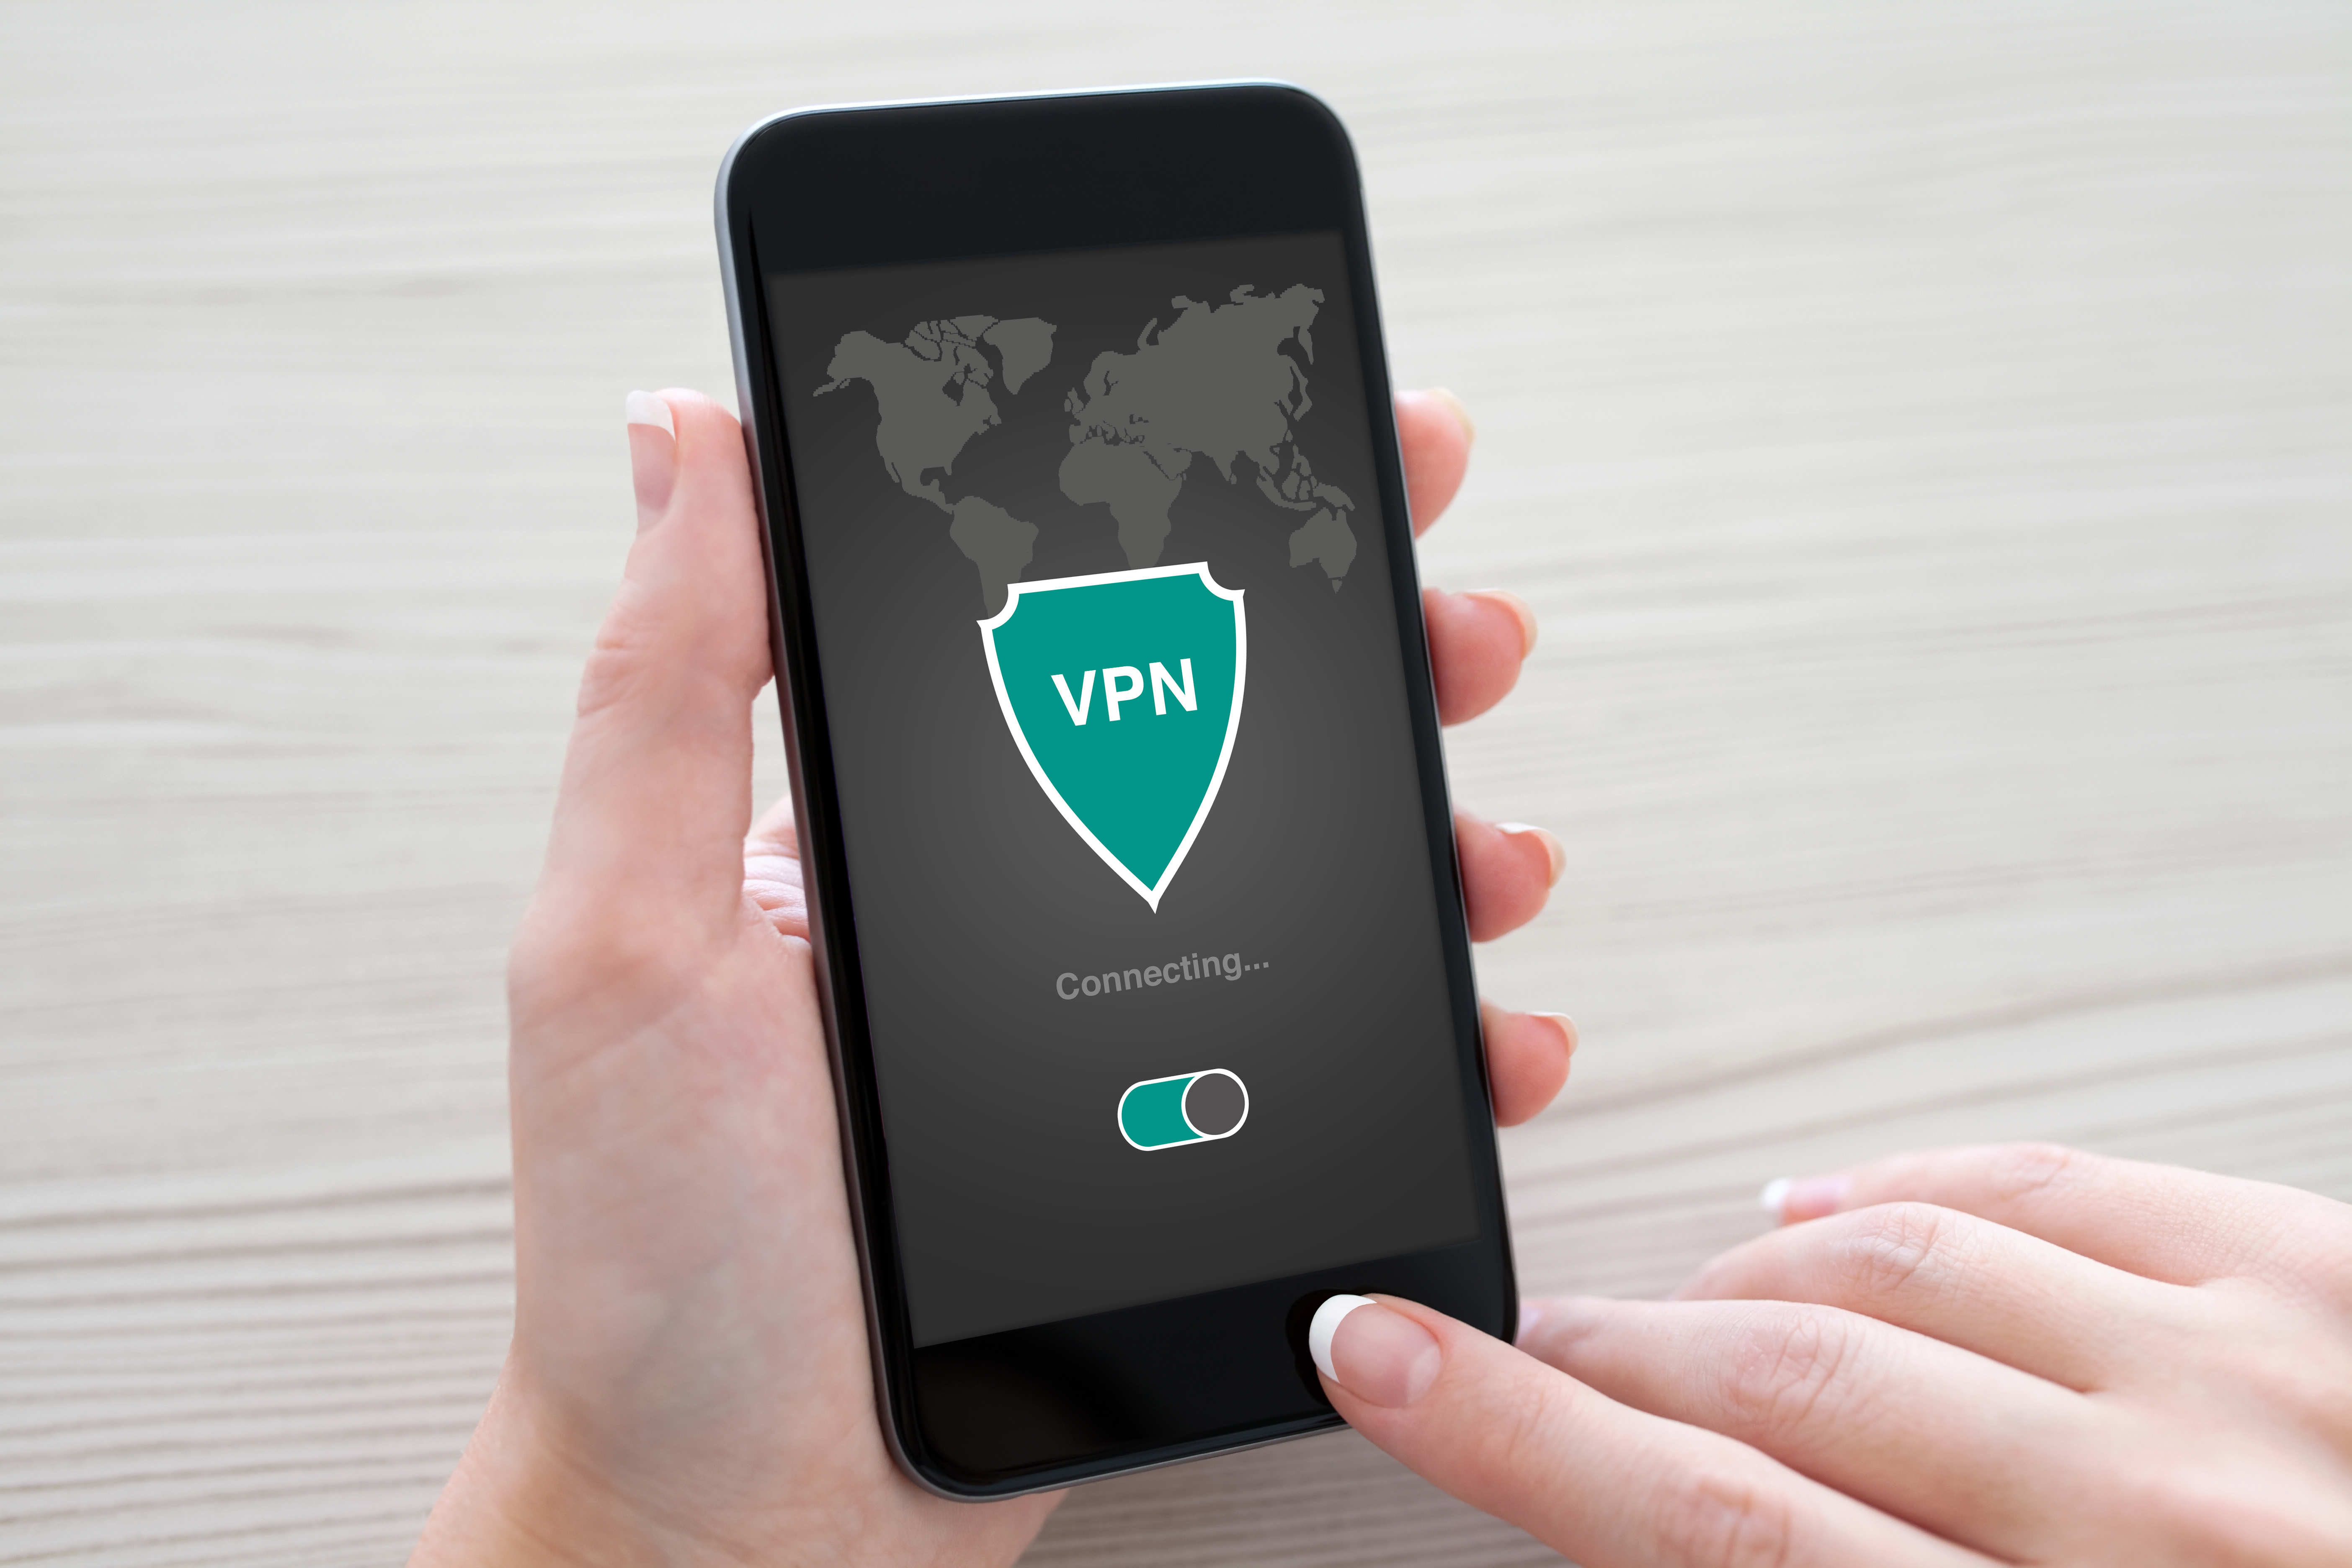 VPN Badge on a Smartphone